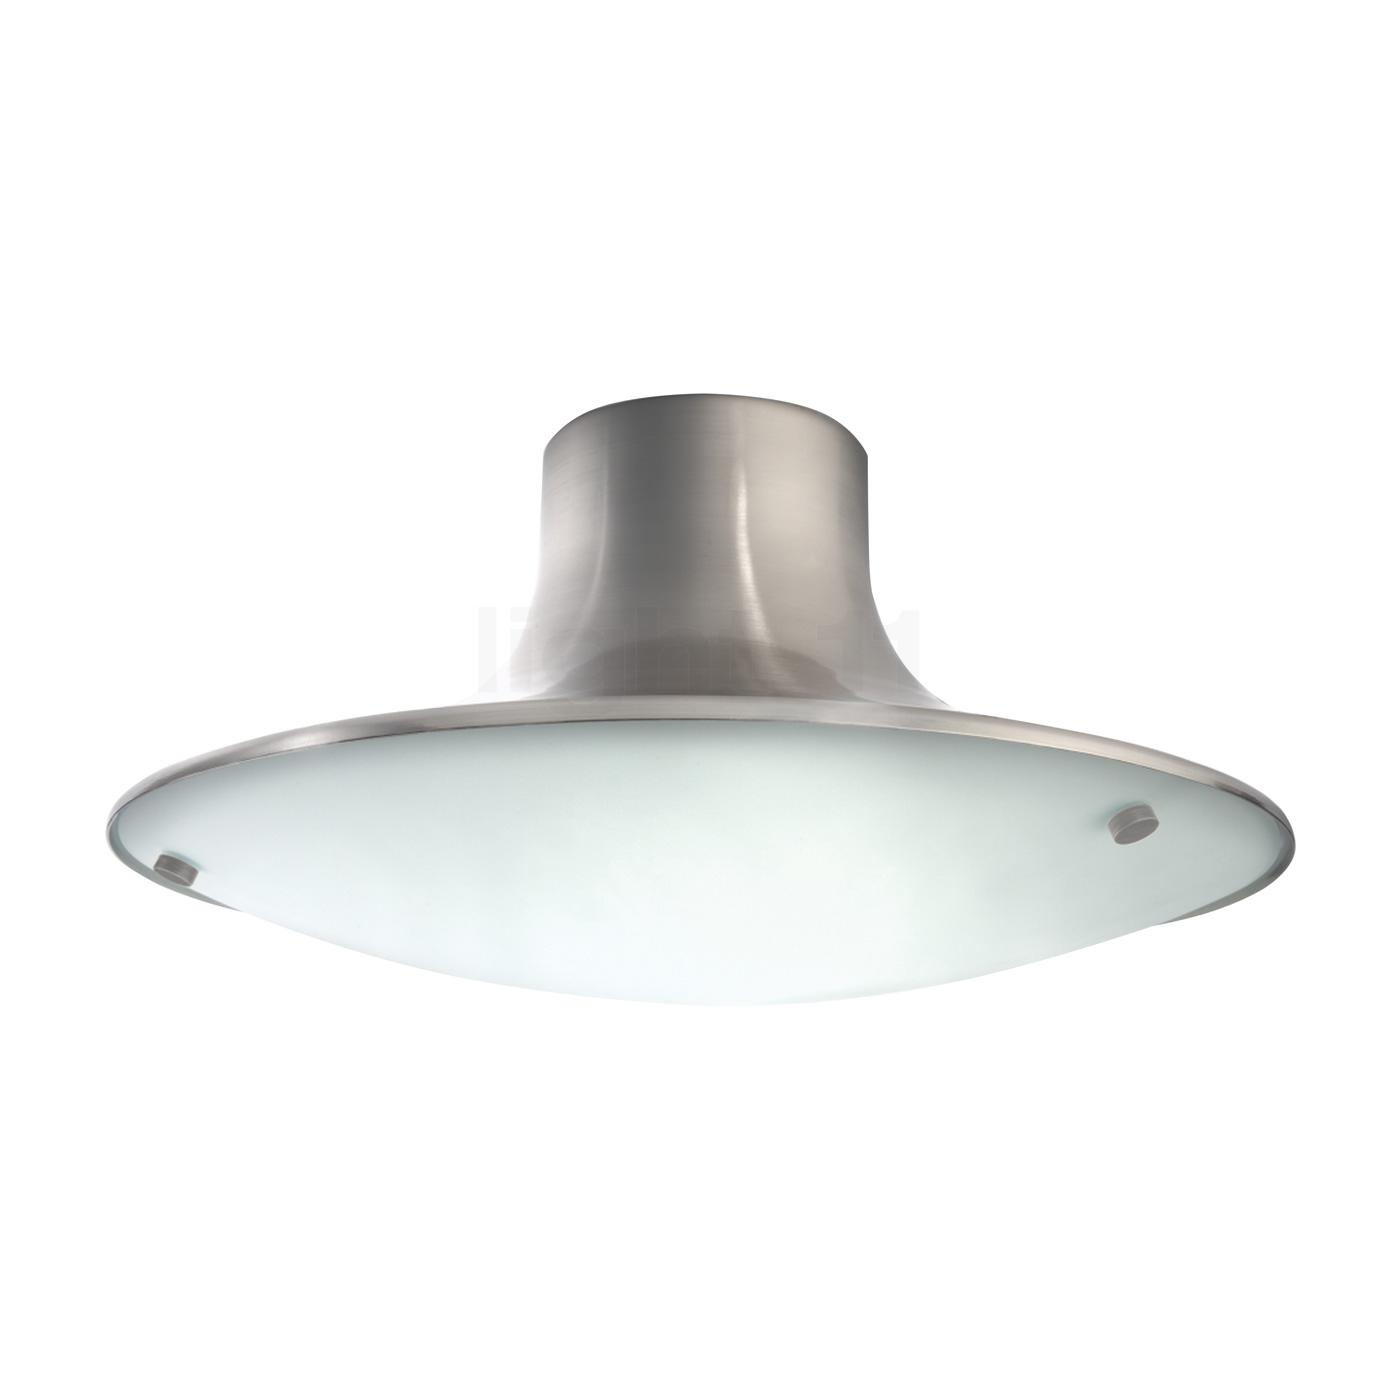 philips ecomoods ceiling light photo - 10